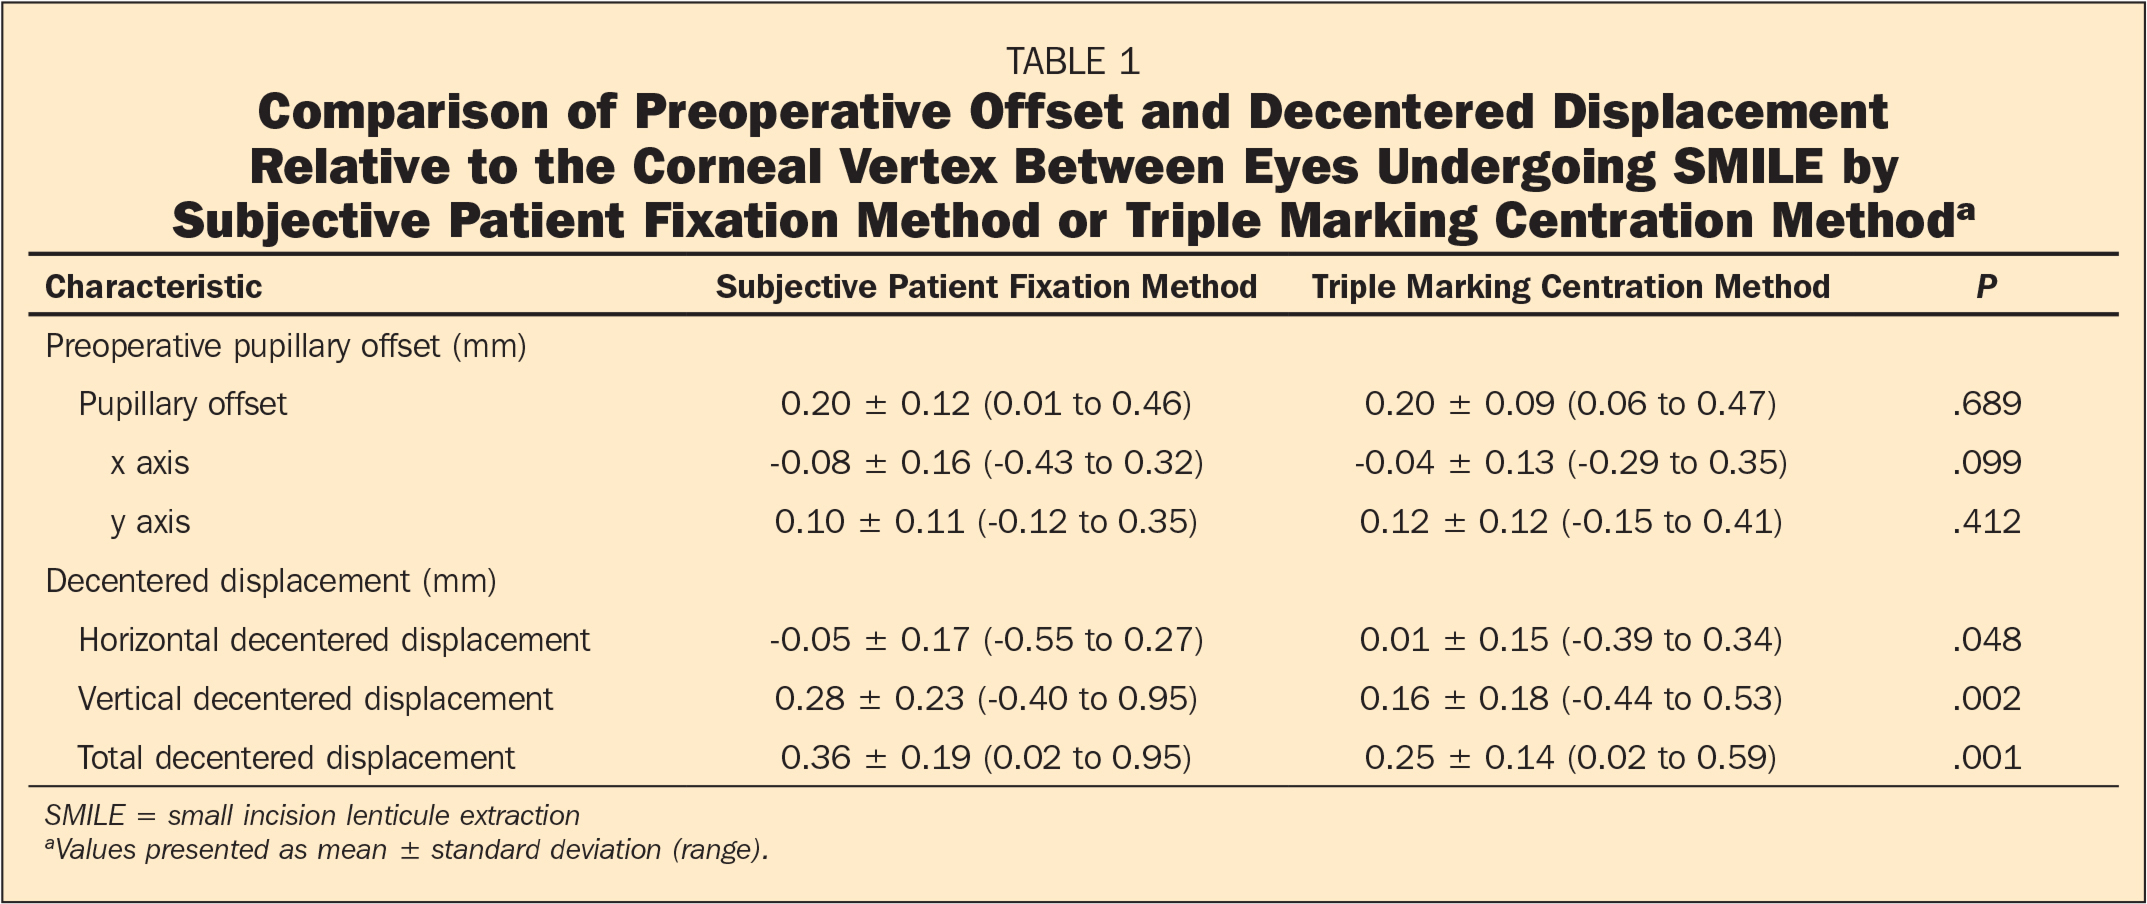 Comparison of Preoperative Offset and Decentered Displacement Relative to the Corneal Vertex Between Eyes Undergoing SMILE by Subjective Patient Fixation Method or Triple Marking Centration Methoda